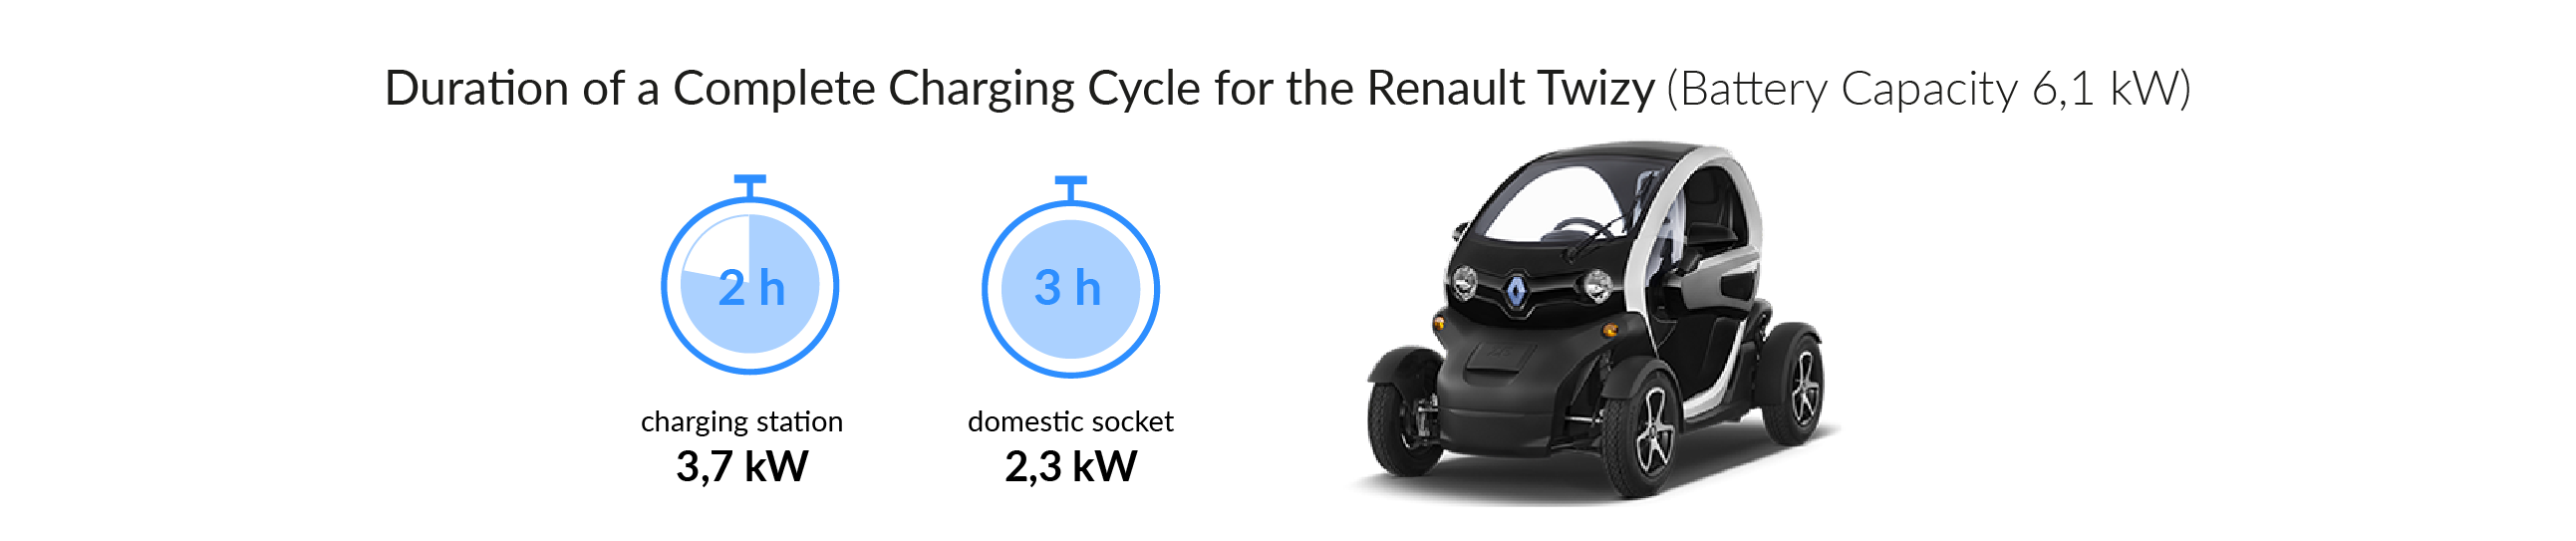 Charging time for the Renault Twizy